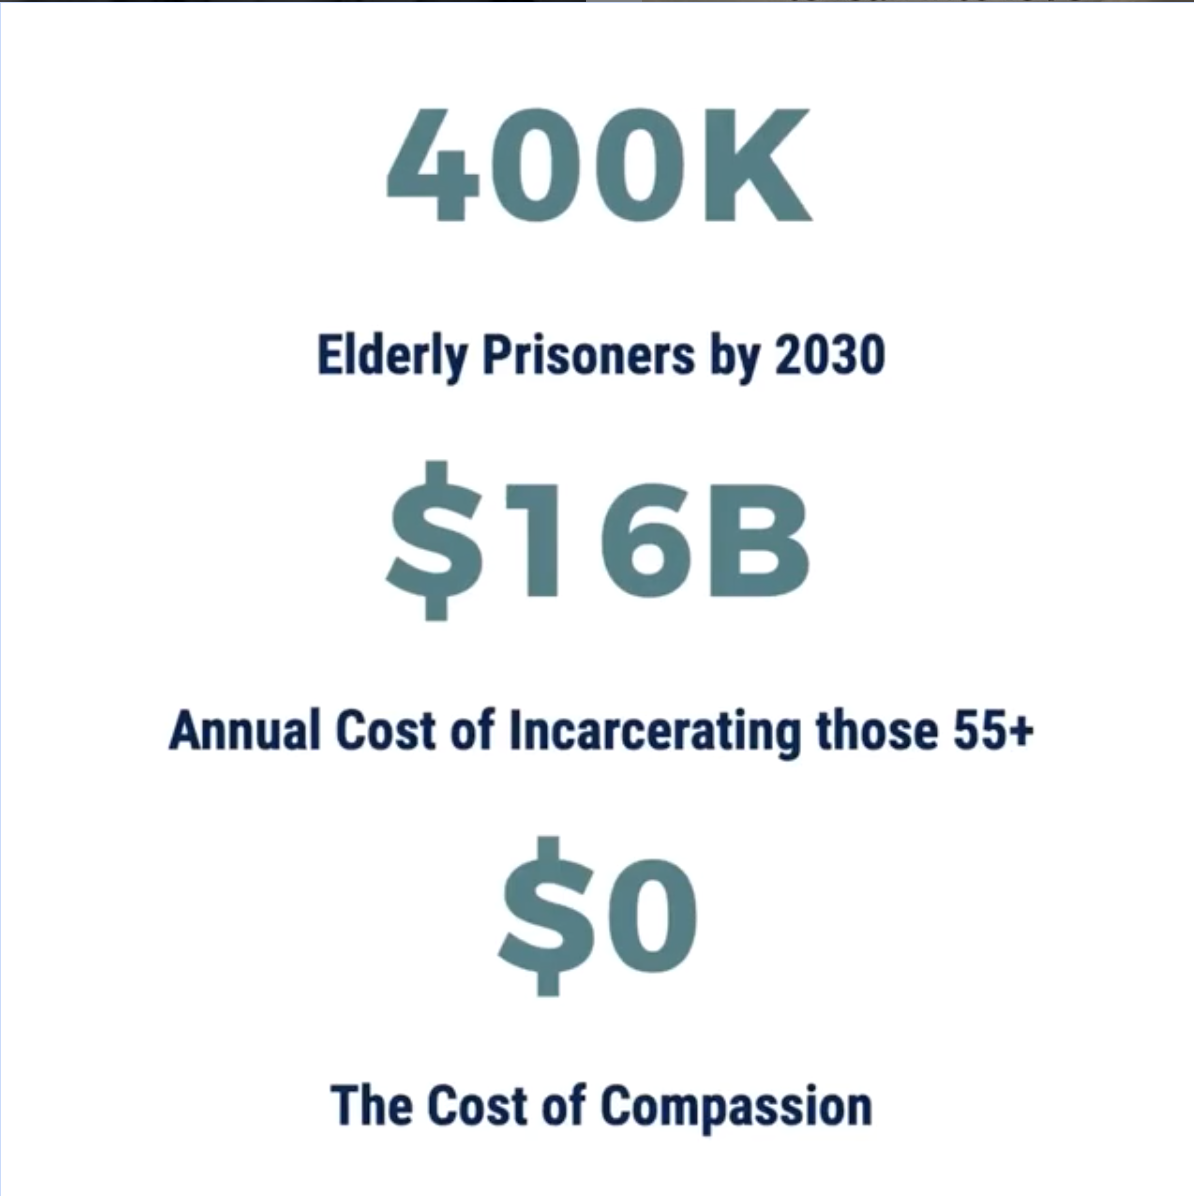 Cost of Compassion